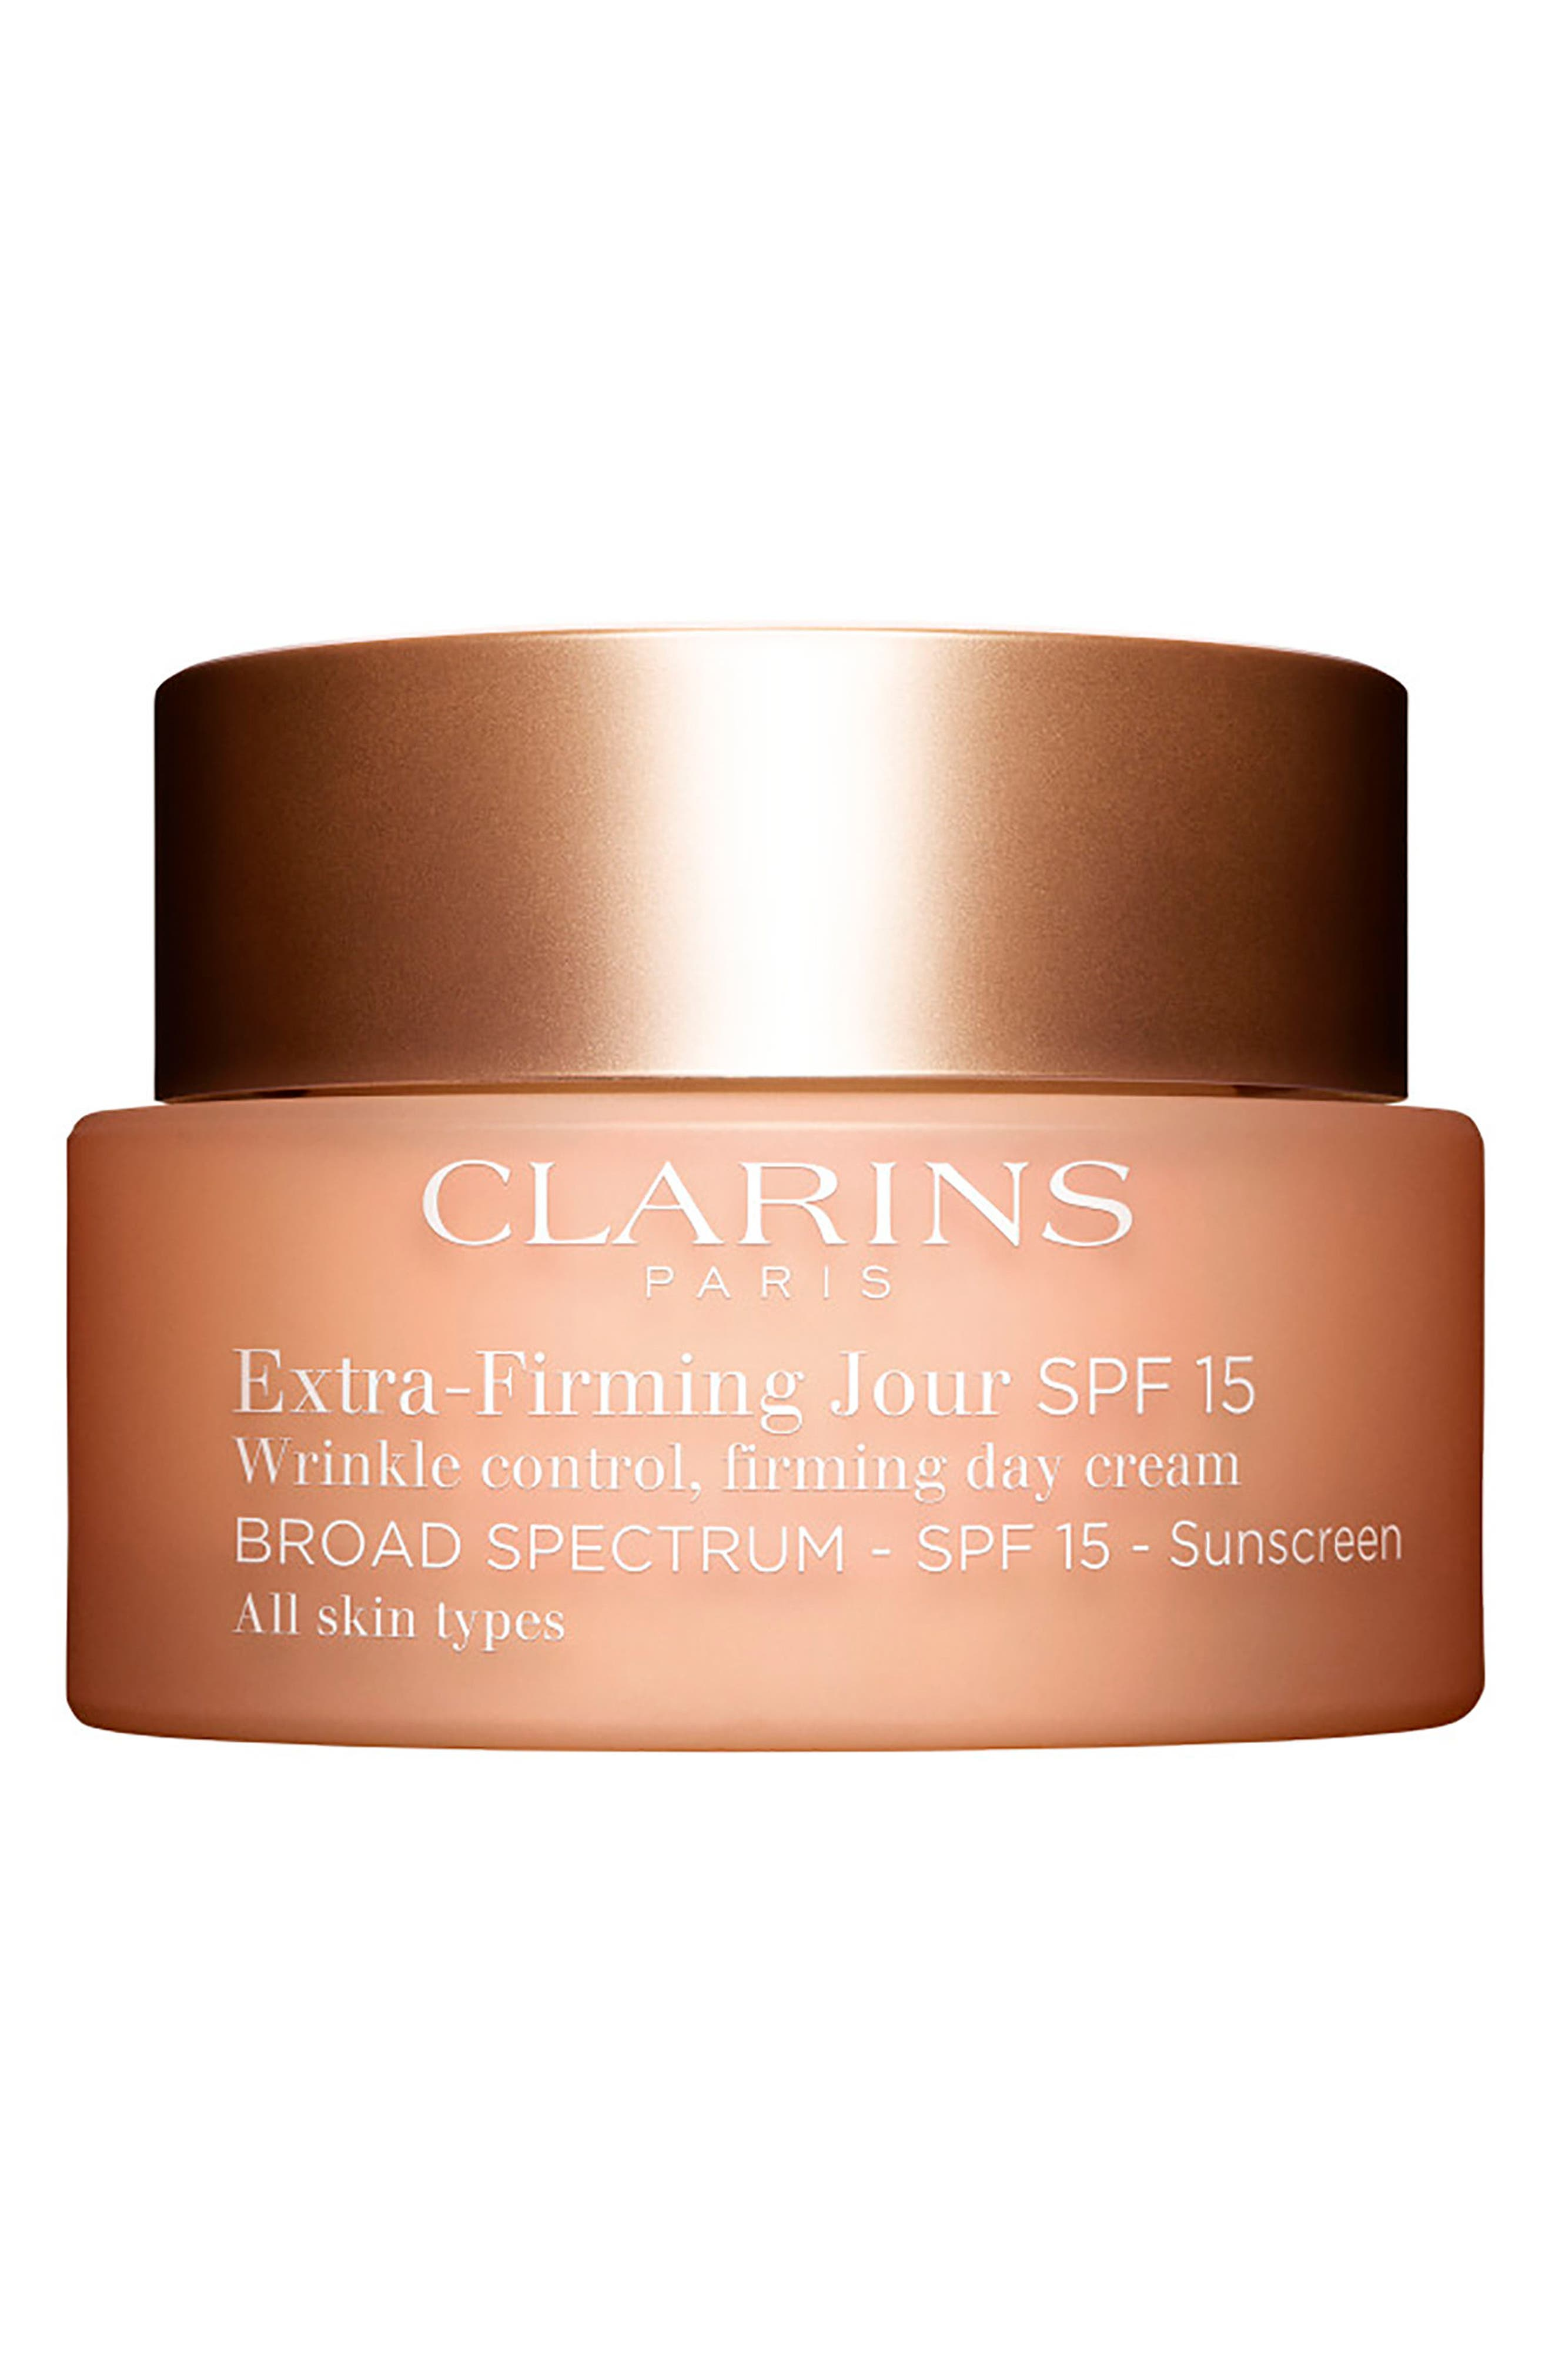 Extra-Firming Wrinkle Control Firming Day Cream Broad Spectrum 15 for All Skin Types, Main, color, NO COLOR